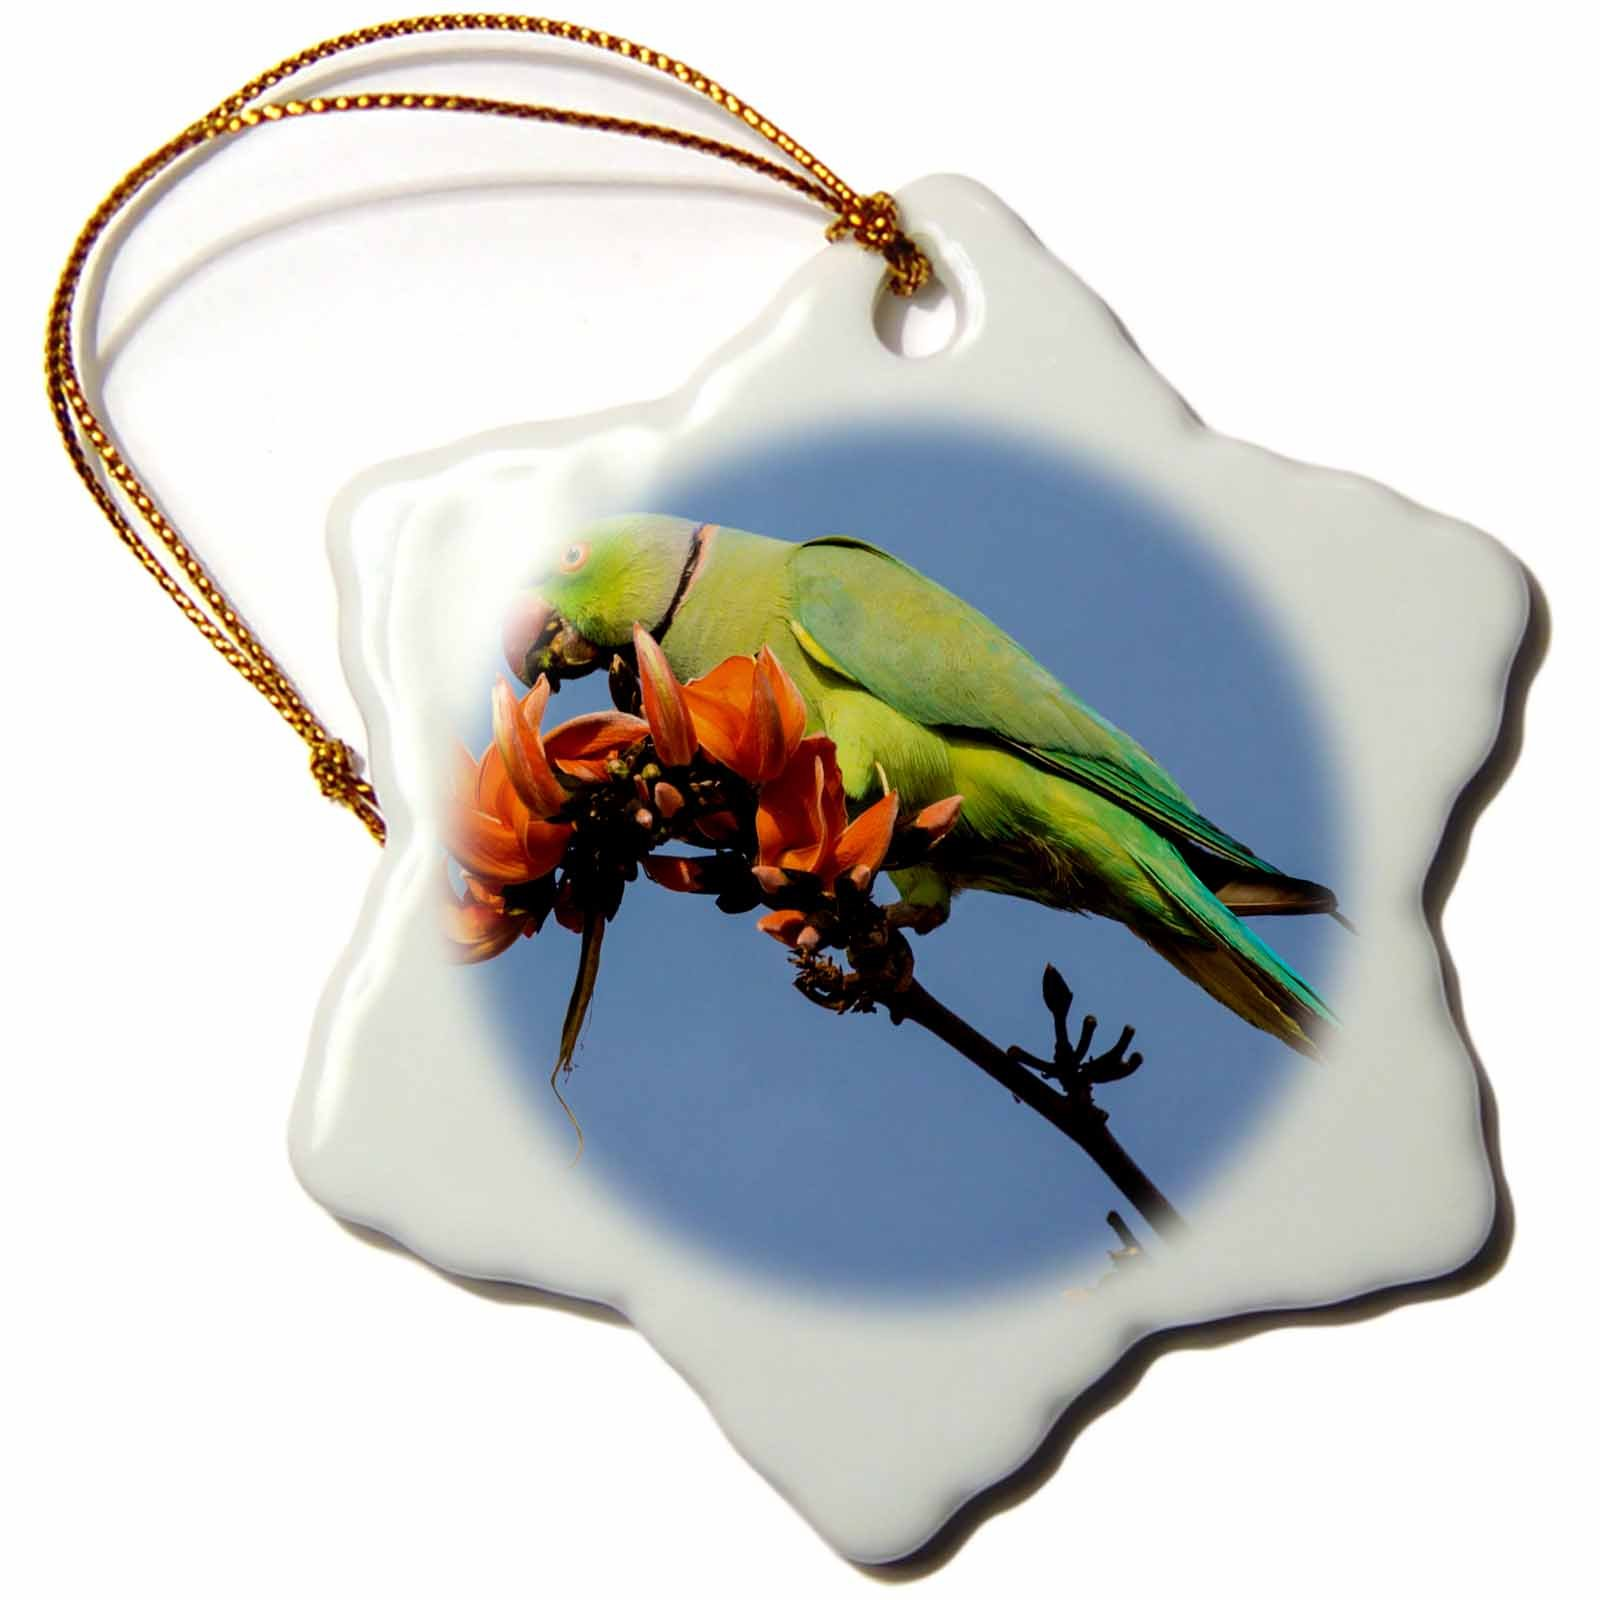 3dRose Danita Delimont - Parrots - India. Rose Ringed Parakeet in a flame of the forest tree. - 3 inch Snowflake Porcelain Ornament (orn_276798_1)